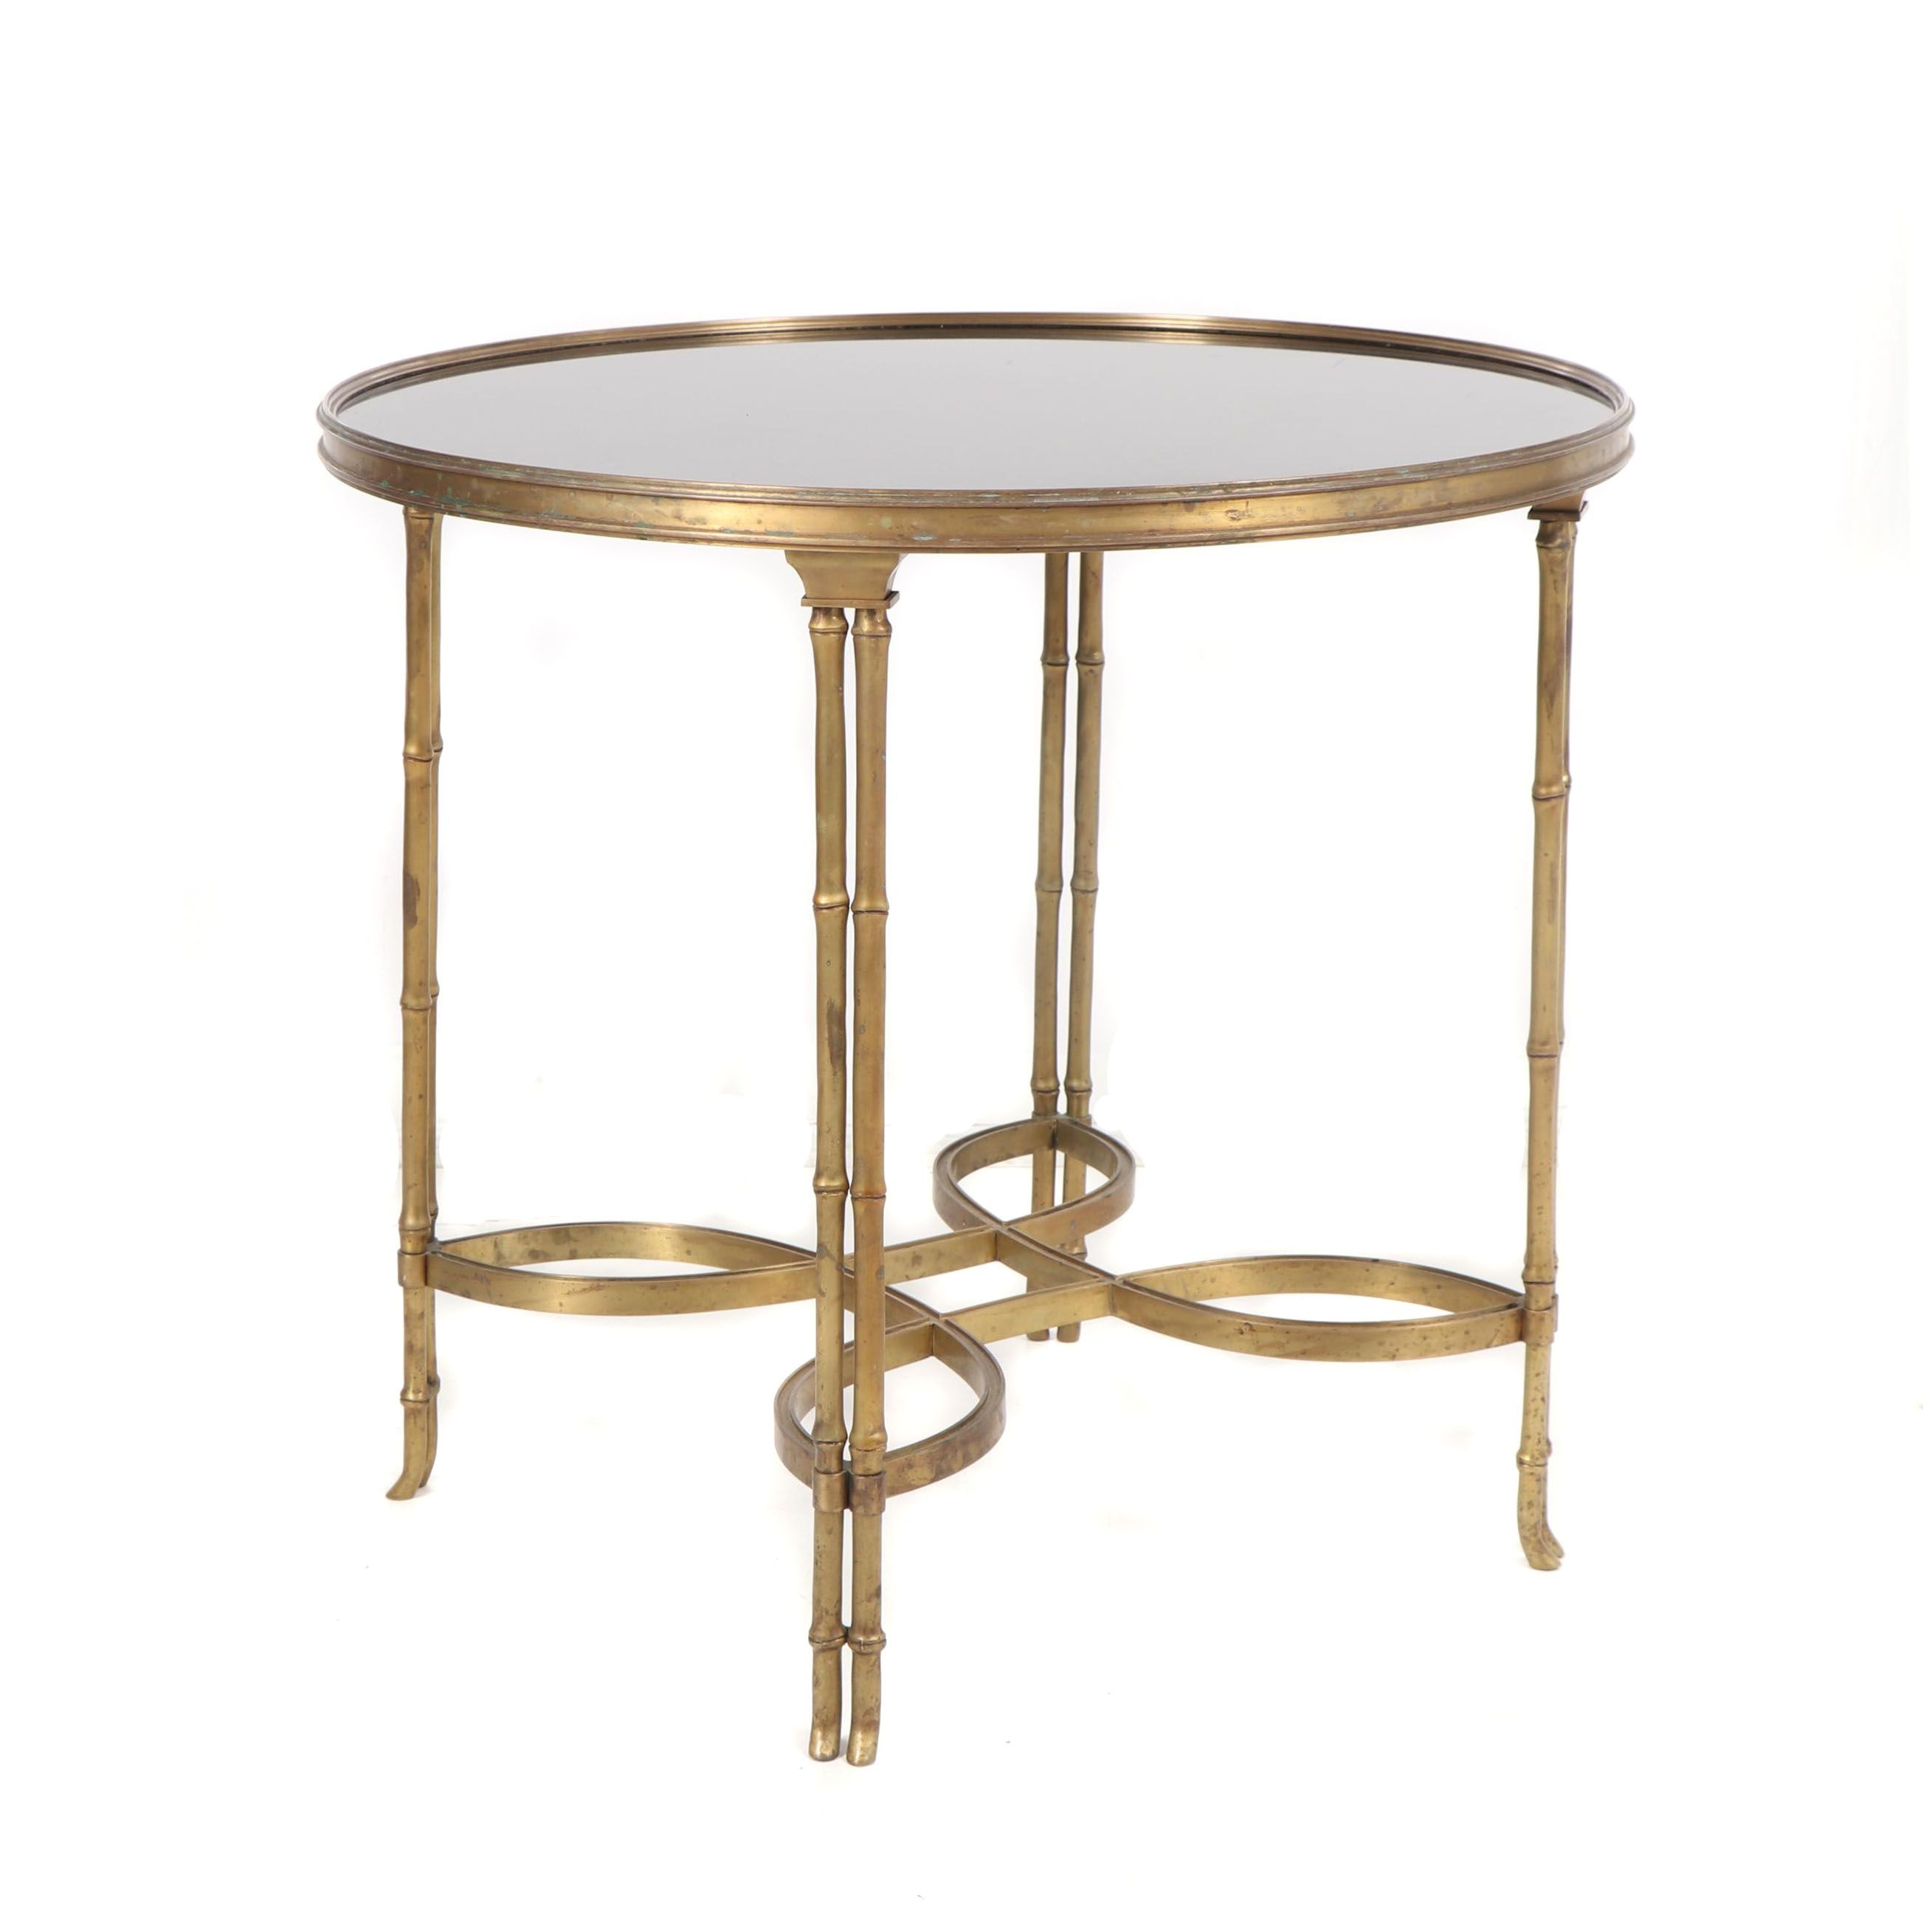 Hollywood Regency Style Brass & Black Granite Double Bamboo Leg Table, 21st C.